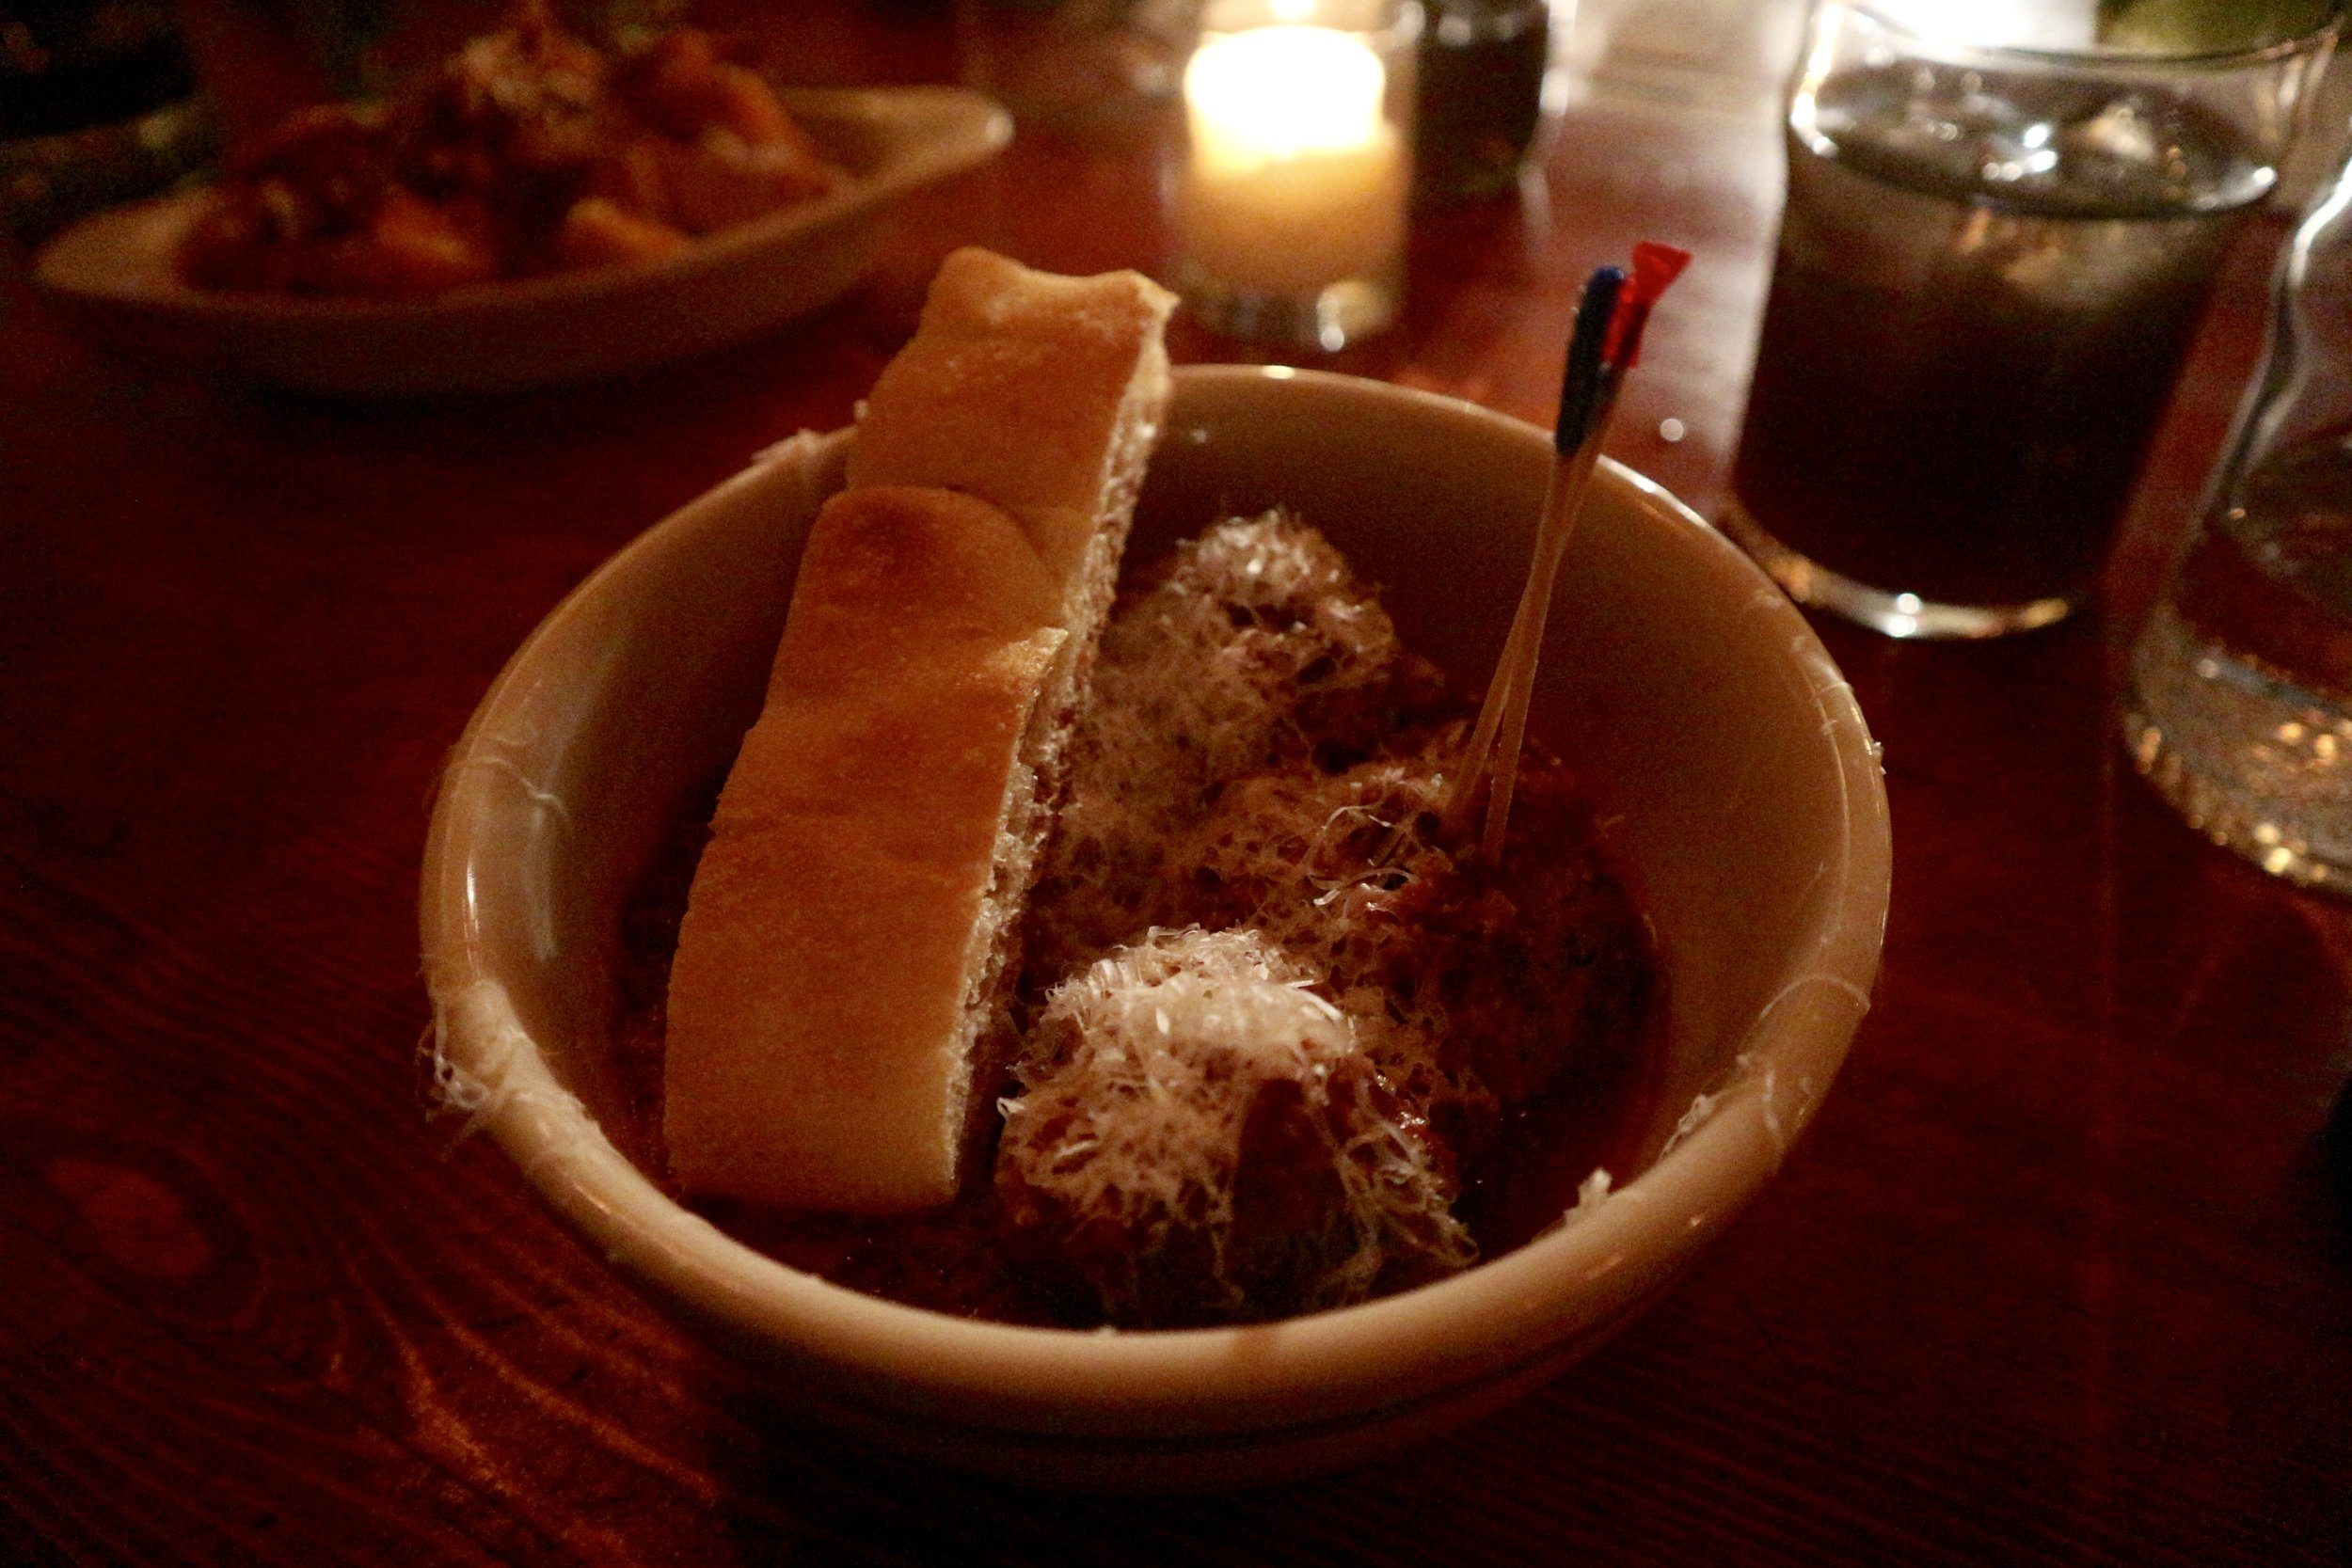 Spicy Meatballs & Focaccia - The Meatball Shop